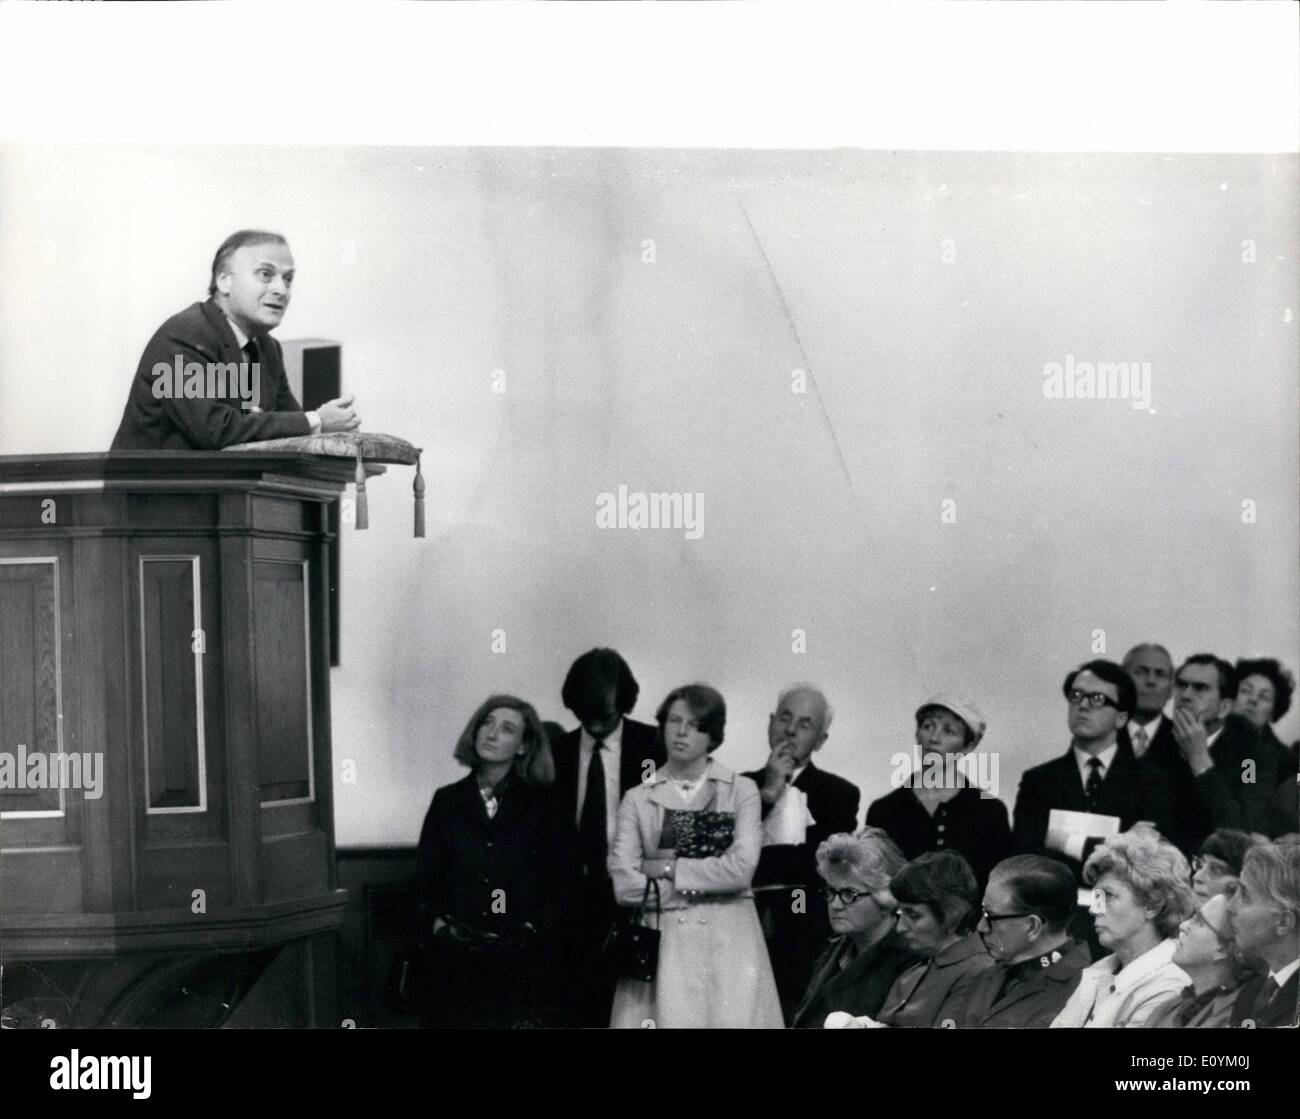 Sep. 09, 1970 - Yehudi Menuhin in lunchtime dialogue.; Yehudi Menuhin, the violinist, took part today in the first Stock Photo